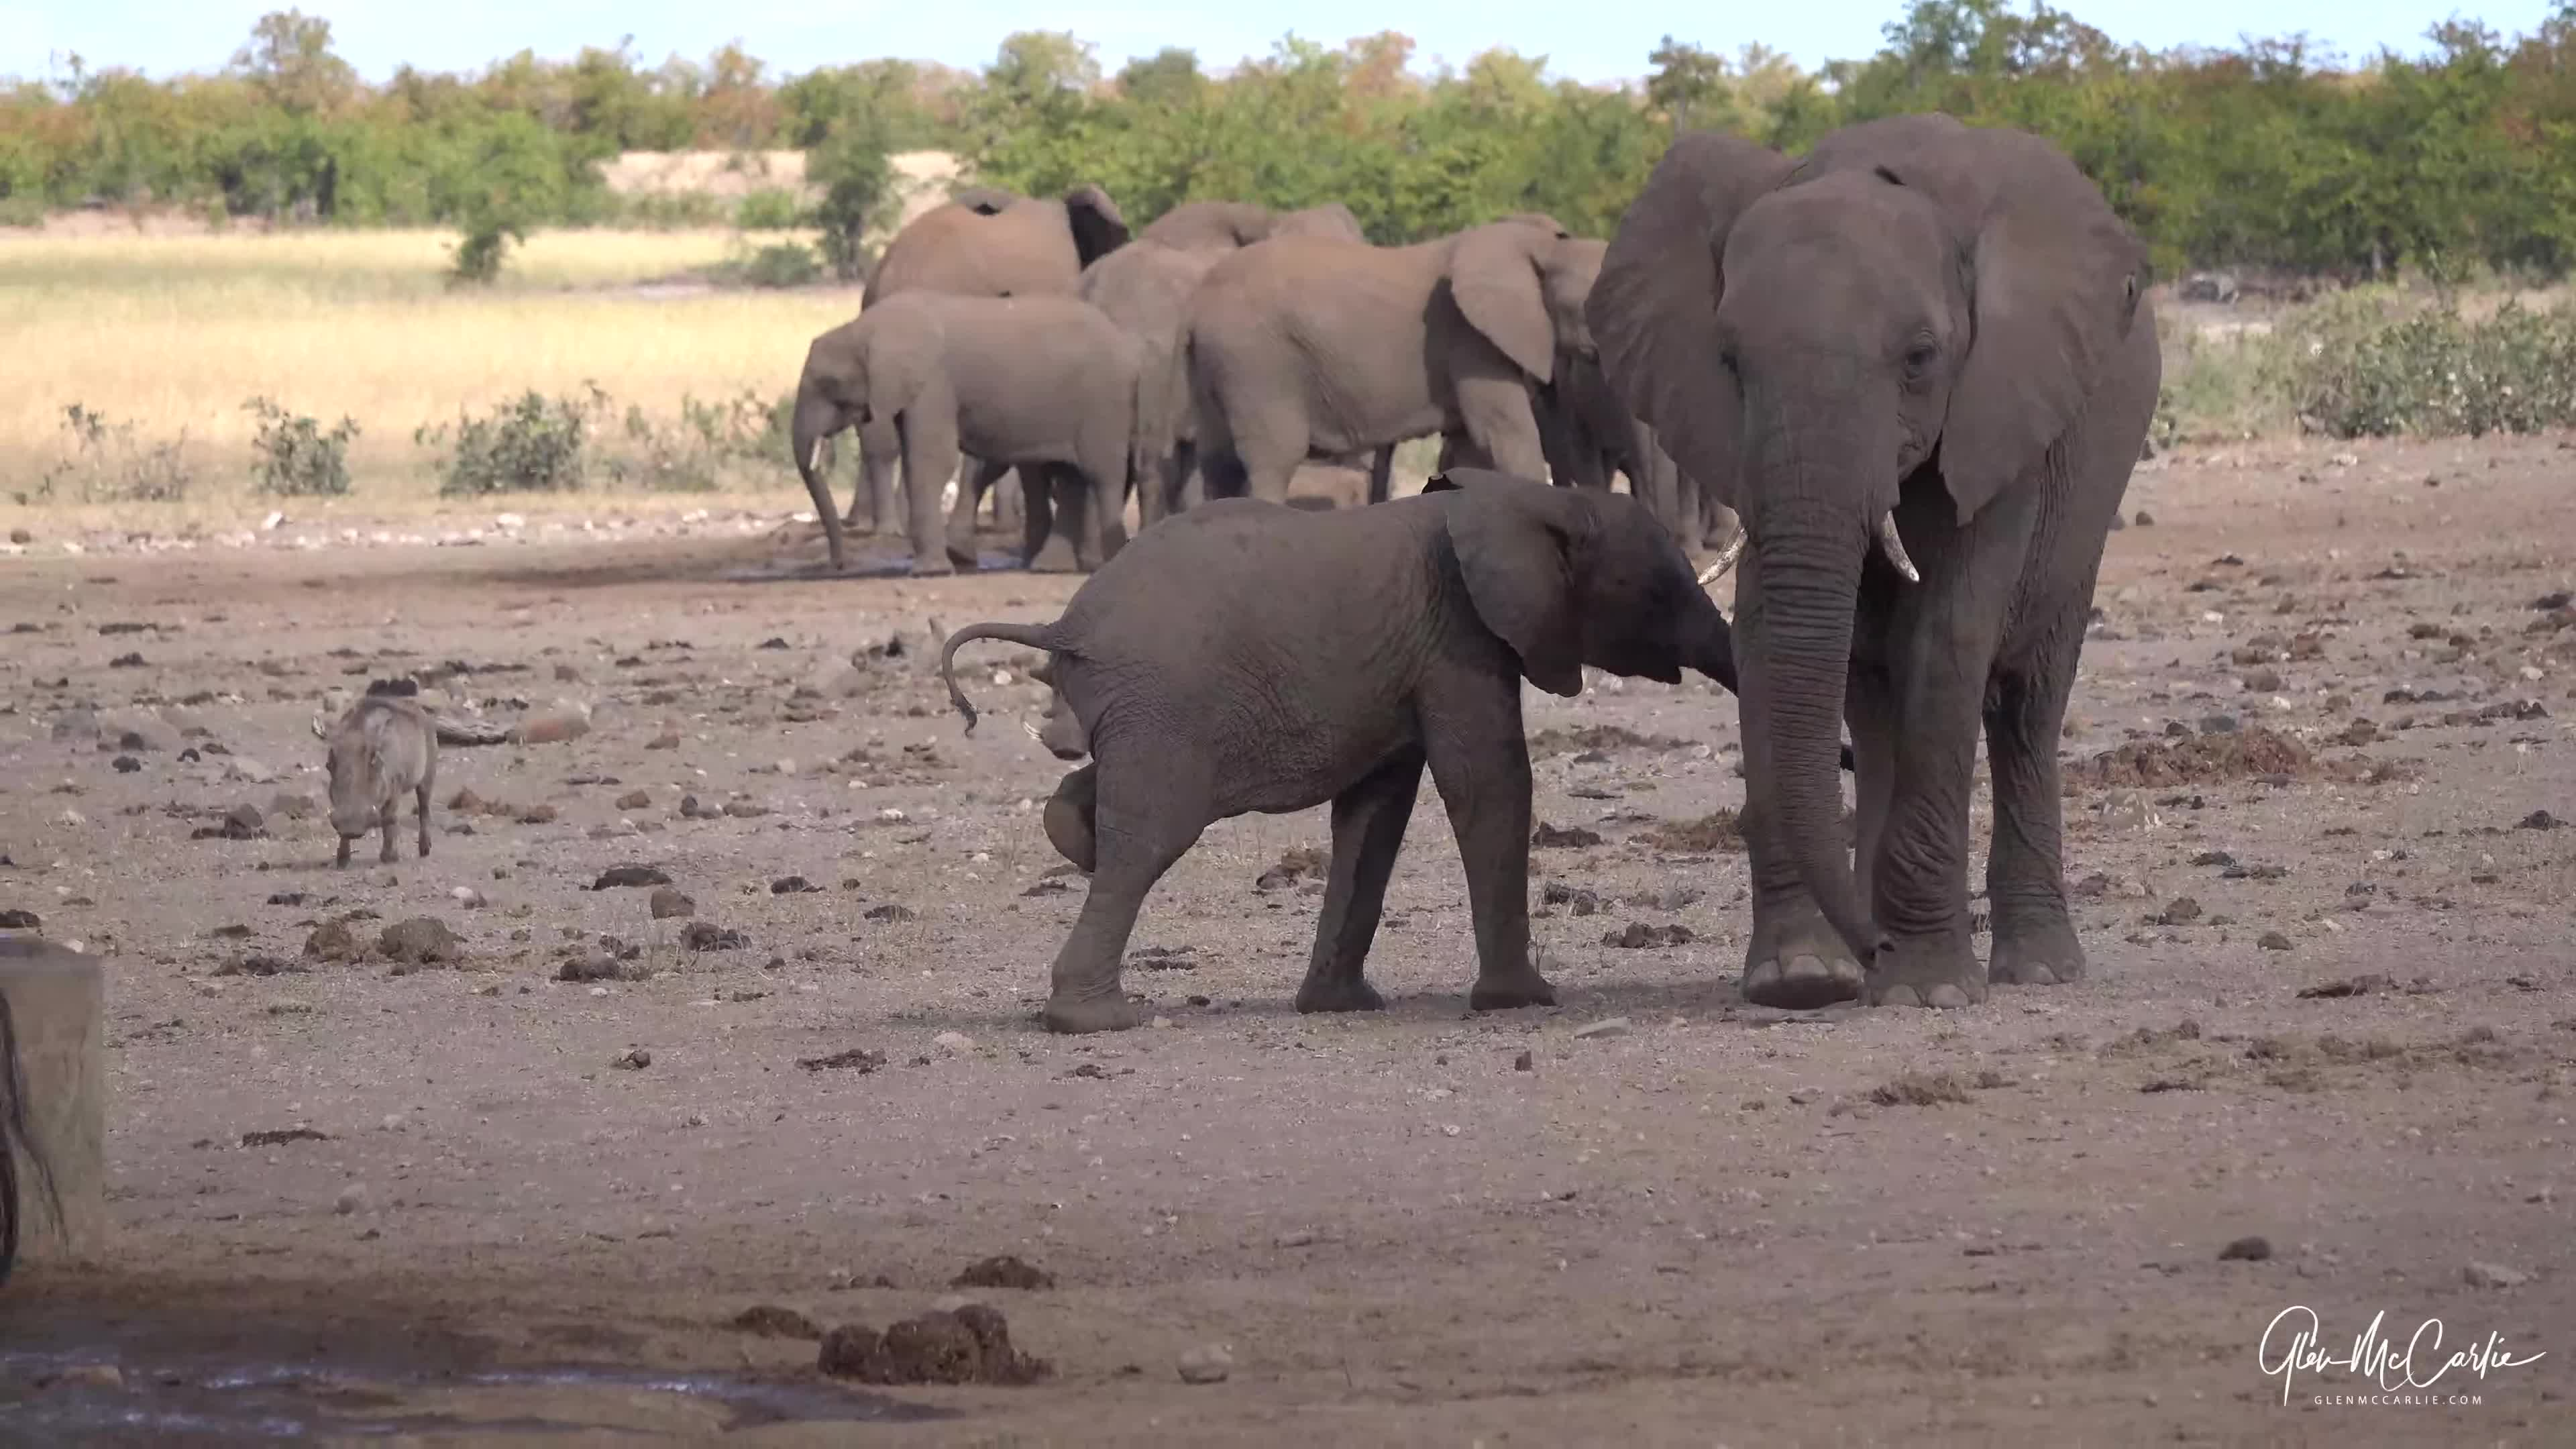 Elephants at waterhole GIFs